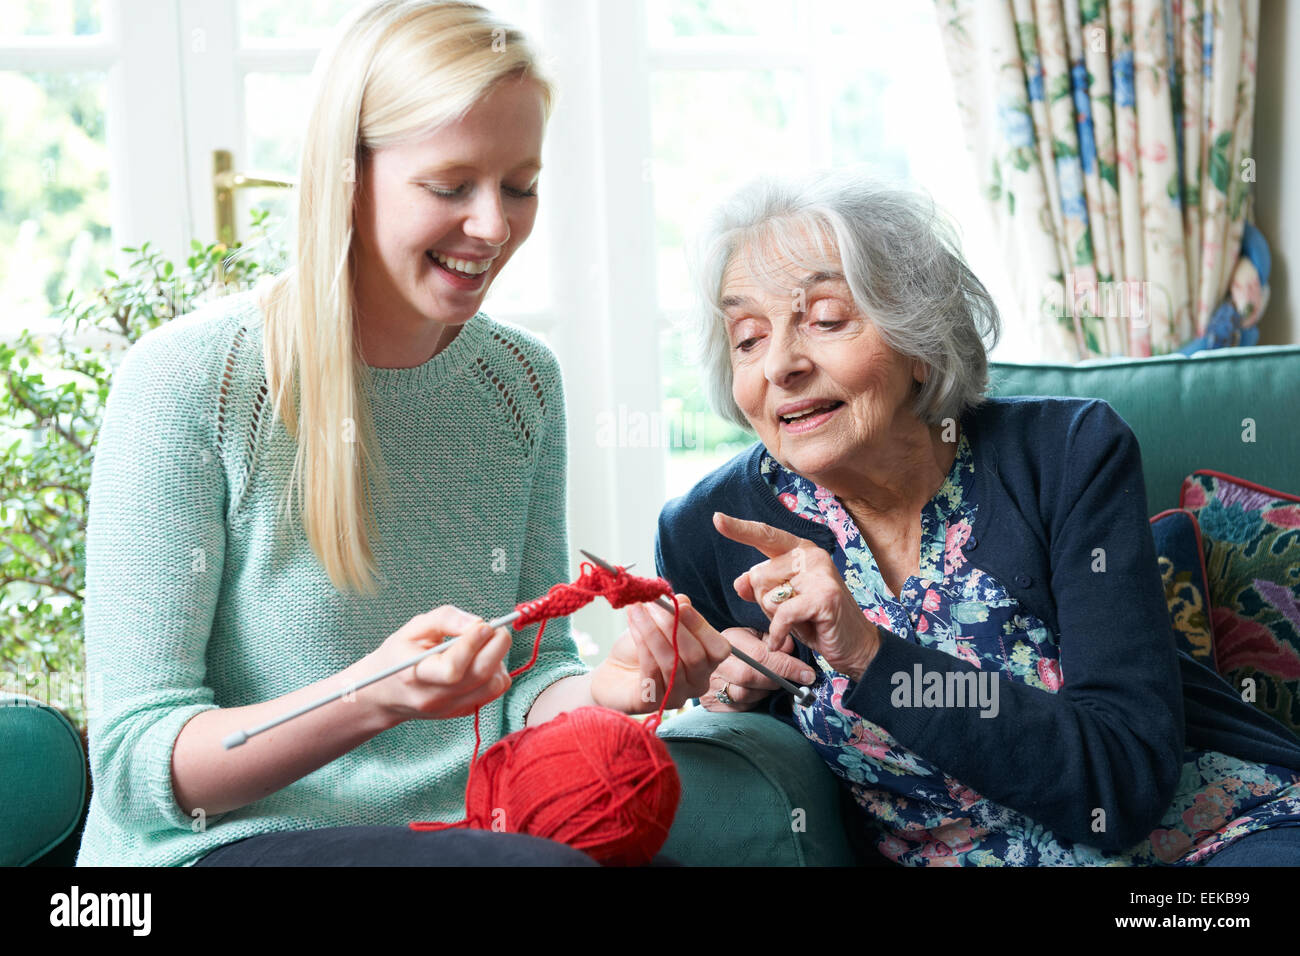 Grandmother Showing Granddaughter How To Knit - Stock Image